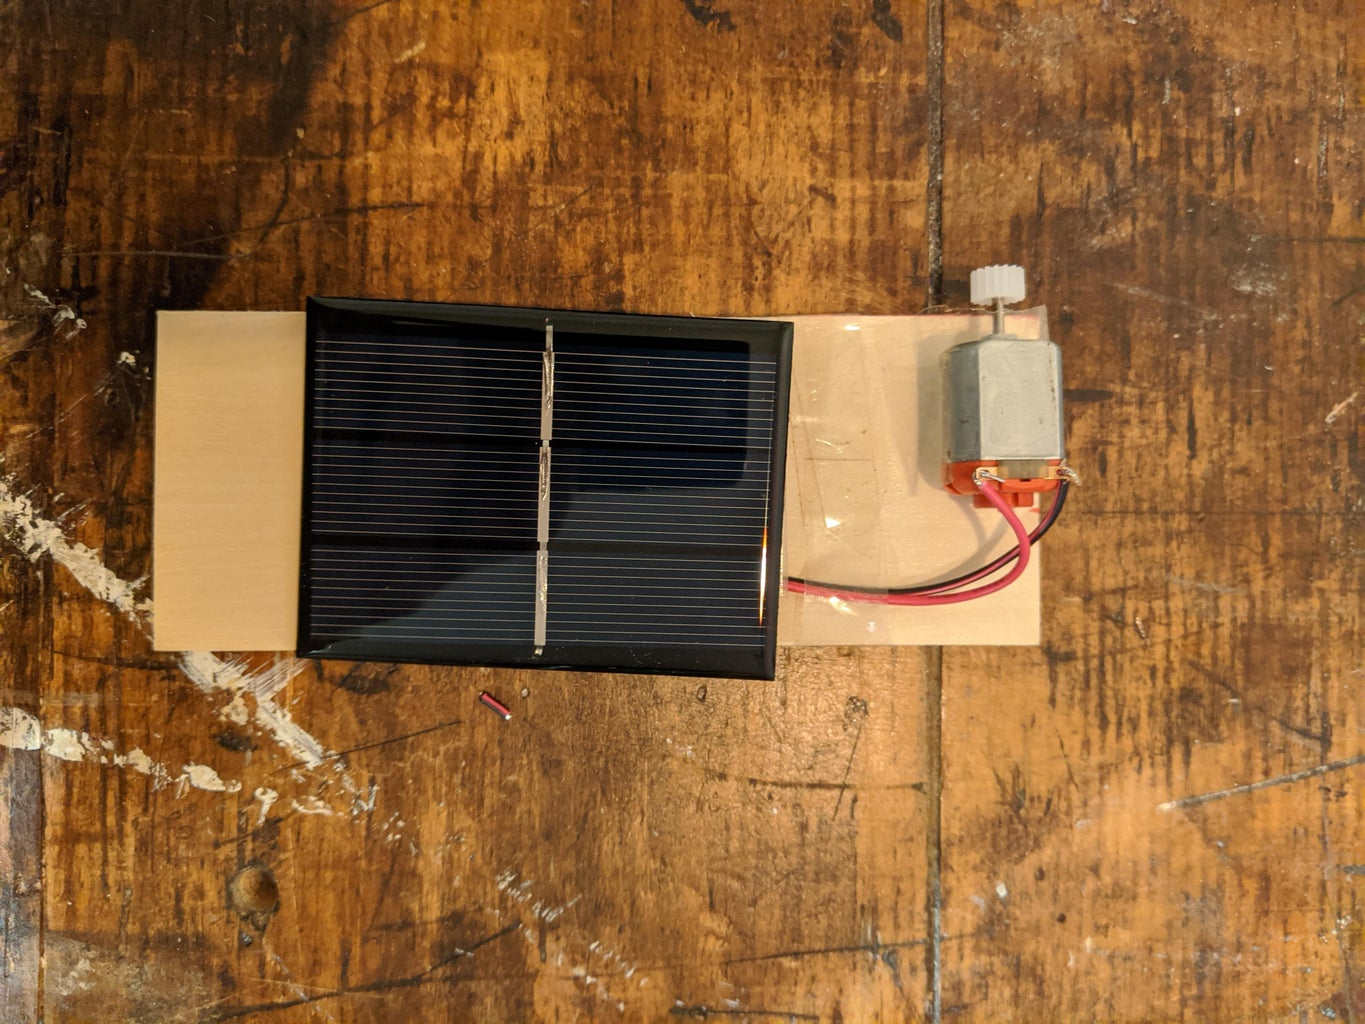 Connect Motor to Solar Cell